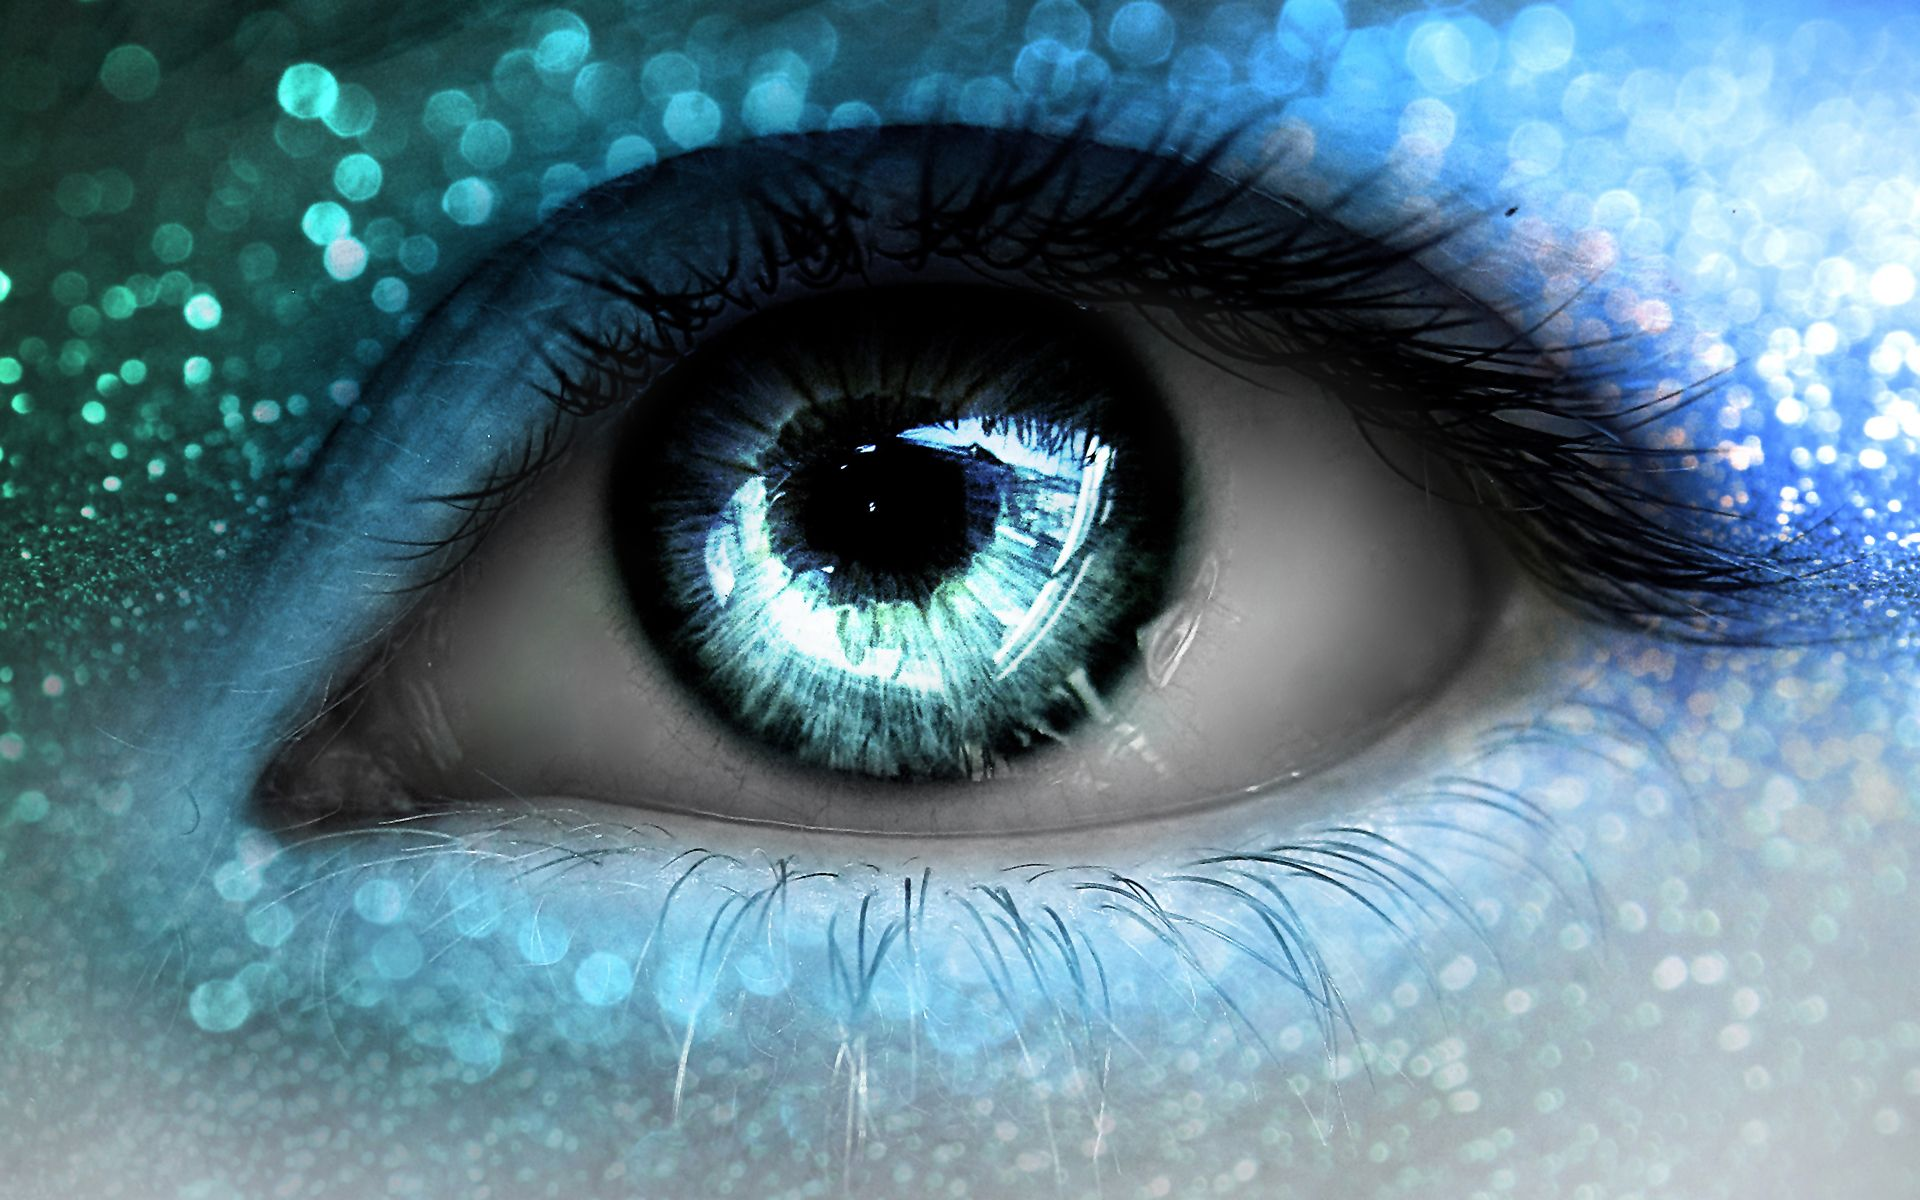 eyeball pictures free Fantasy eye Wallpapers Pictures